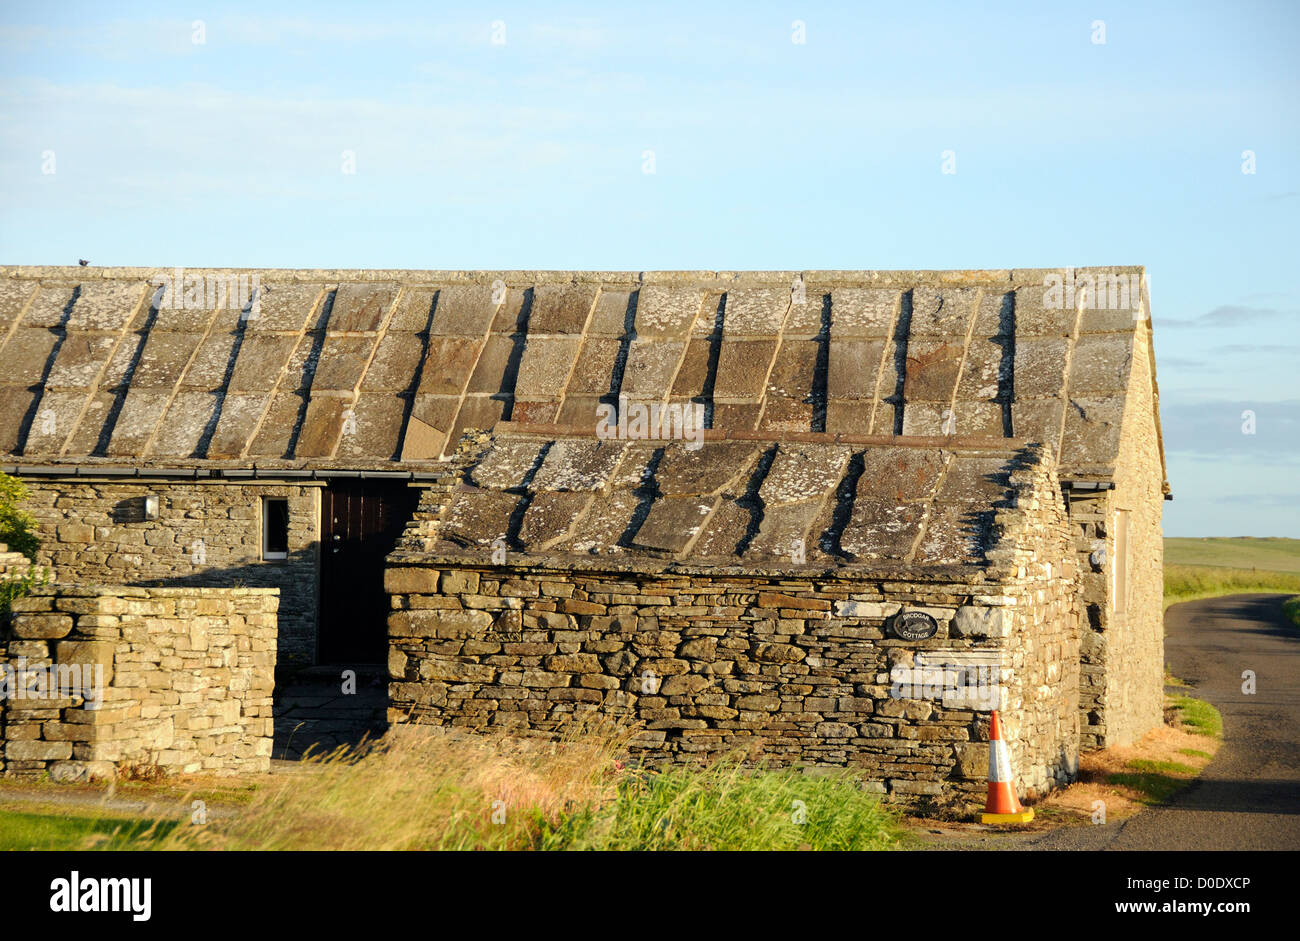 Stone Barn With Stone Roofing Slabs Brodgar Mainland Orkney Stock Photo Alamy